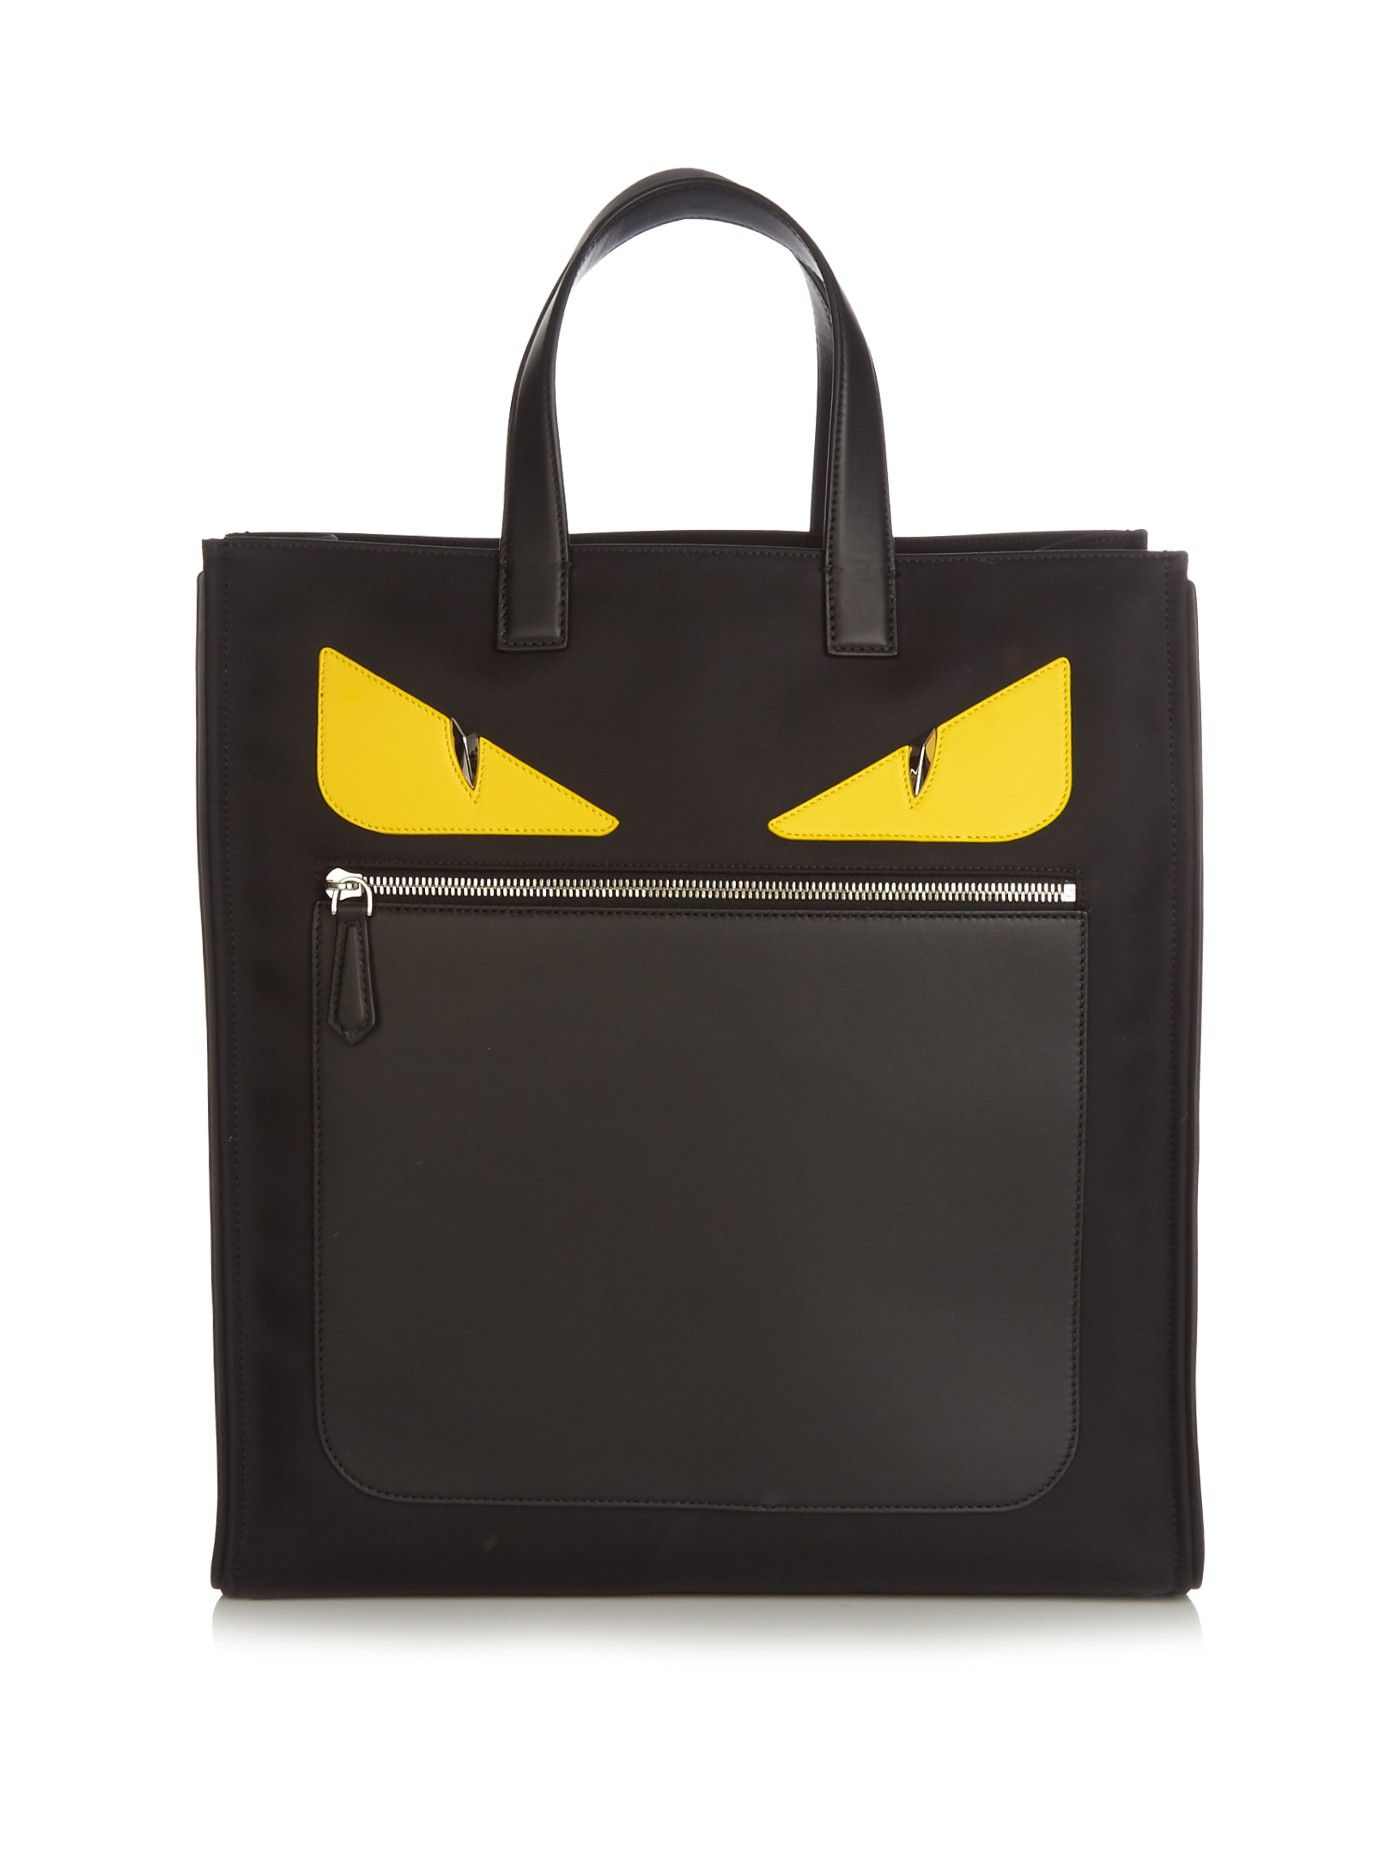 Black Bag Bugs Leather tote bag Fendi